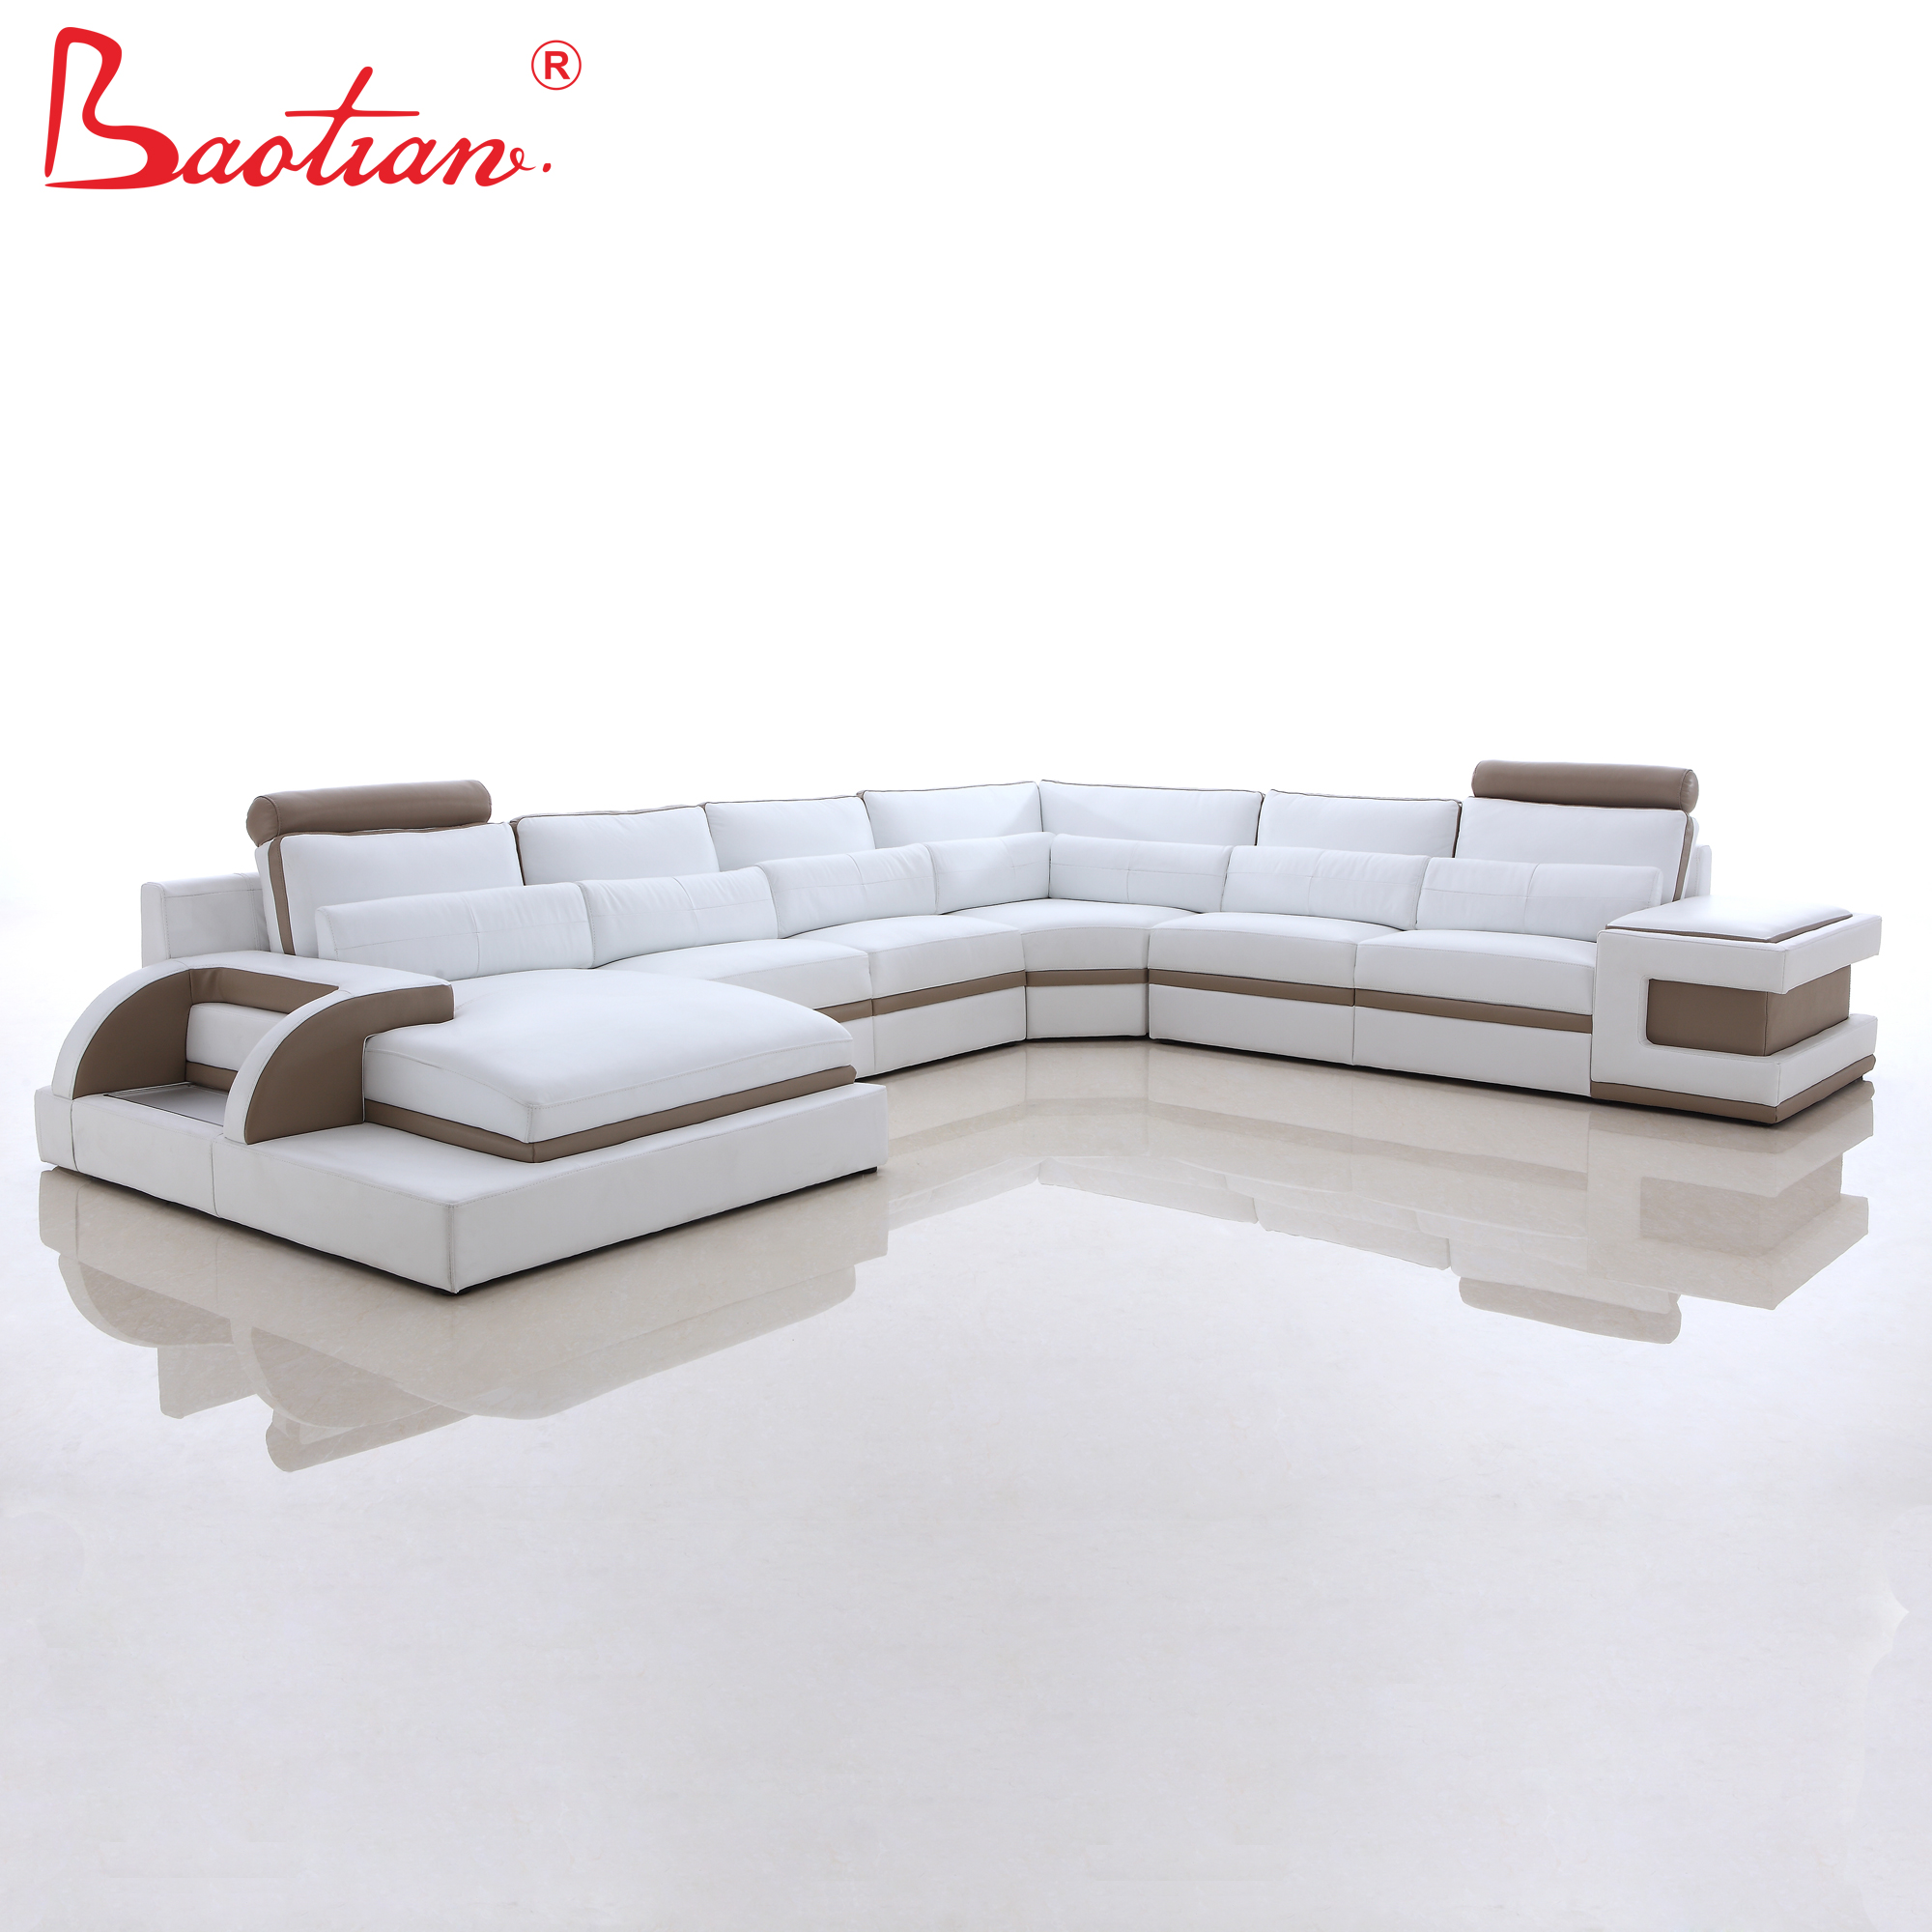 Fine Modern Living Room Furniture Factory Big Leather Sofa Set 7 Seater Designs Or Sectional Corner Fabric Sofas Buy Designs Sofa Leather Sofa Set Fabric Ncnpc Chair Design For Home Ncnpcorg